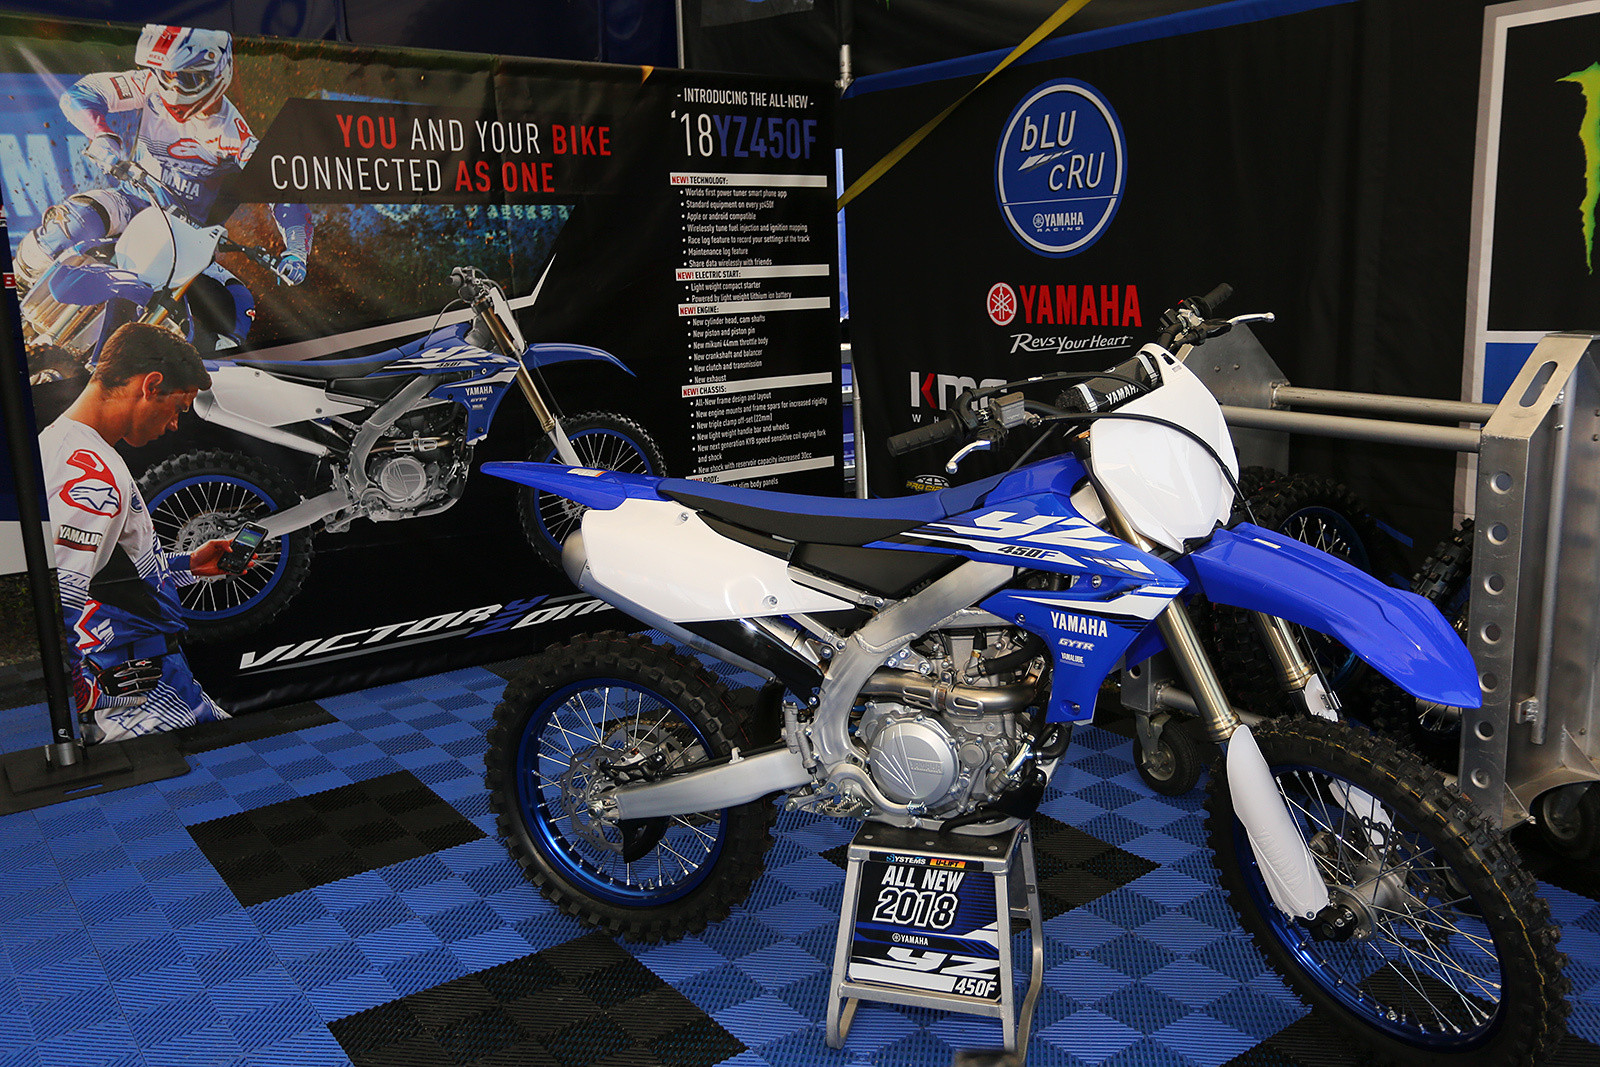 Yamaha had one of the 2018 YZ450Fs filling up the portion of their pit area where Chad Reed's pit was earlier this year. When will Cooper Webb be on one of the new bikes? As soon as they can get an adequate number of the bikes into warehouses here, and the bike is homologated.